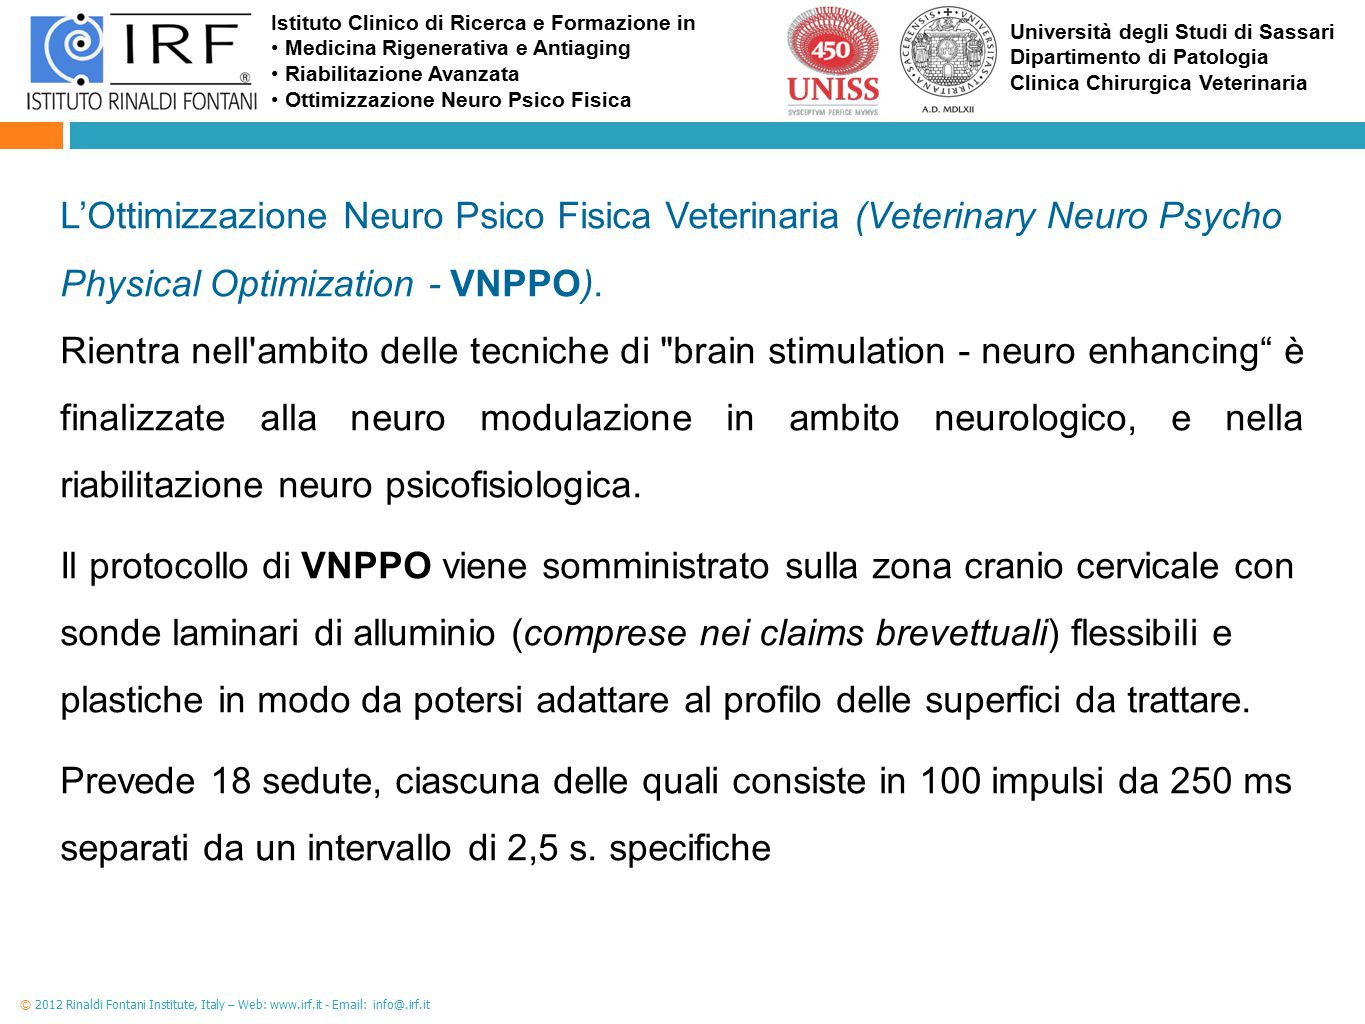 Istituto Clinico di Ricerca e Formazione in Medicina Rigenerativa e Antiaging Riabilitazione Avanzata Ottimizzazione Neuro Psico Fisica Università degli Studi di Sassari Dipartimento di Patologia Clinica Chirurgica Veterinaria © 2012 Rinaldi Fontani Institute, Italy – Web: www.irf.it - Email: info@.irf.it L'Ottimizzazione Neuro Psico Fisica Veterinaria (Veterinary Neuro Psycho Physical Optimization - VNPPO).